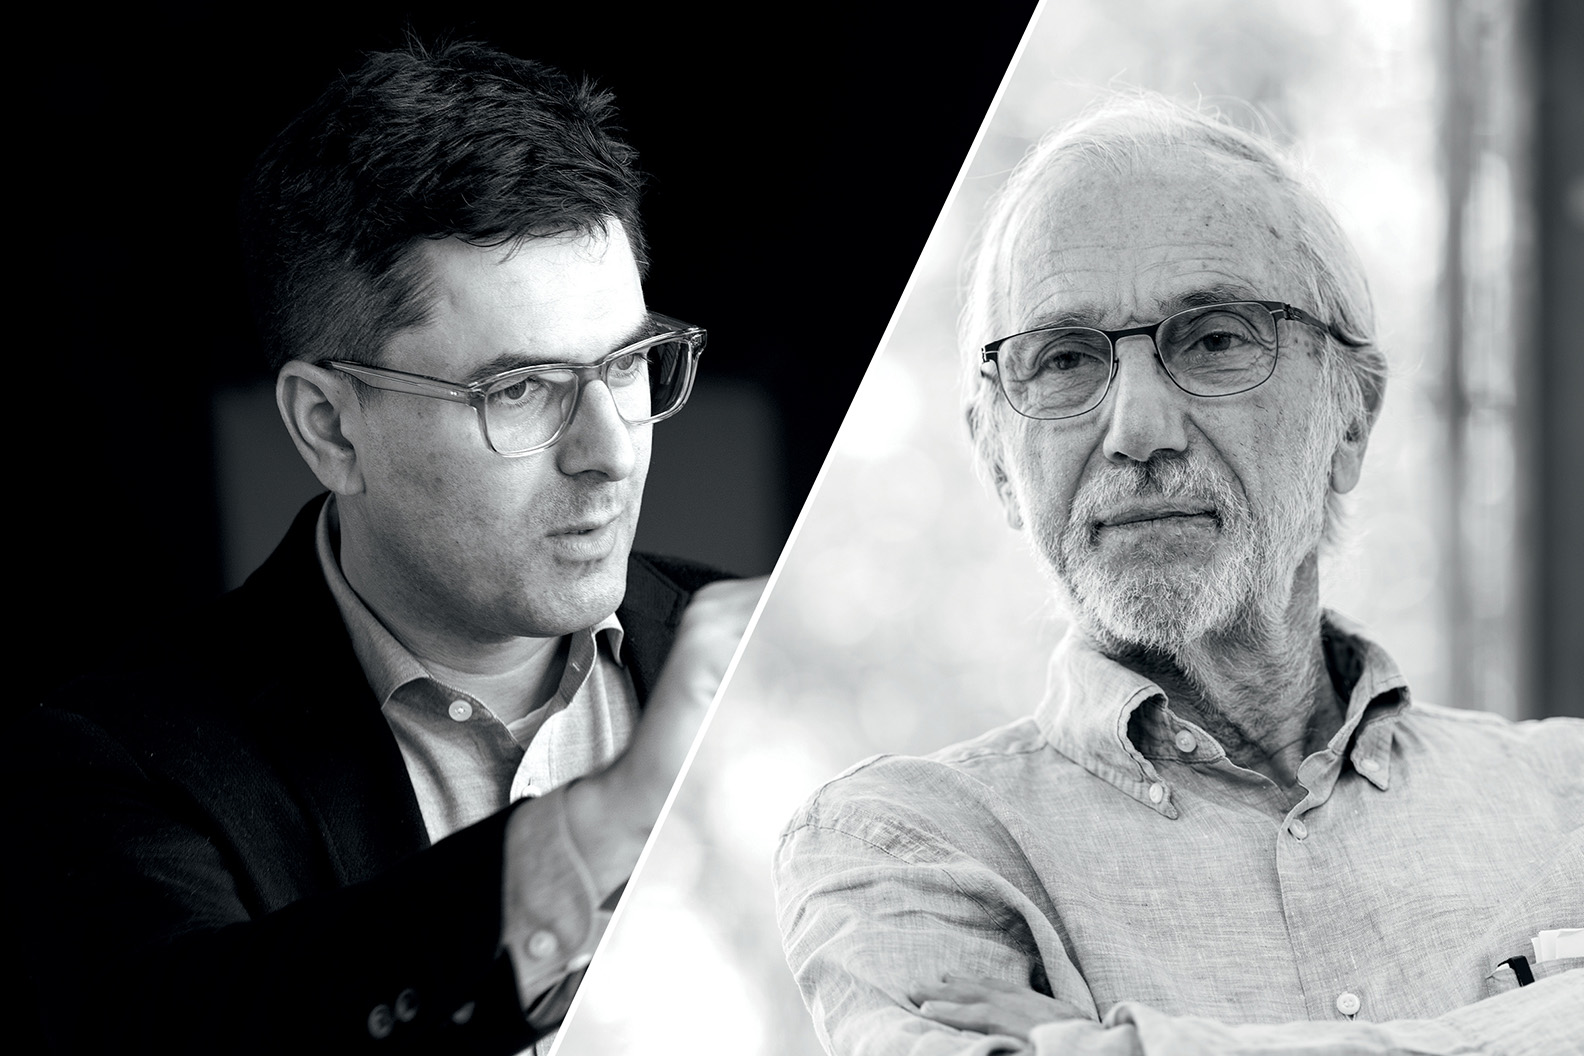 Daniel Goldberg and Renzo Piano, Founder & Director at State of Craft & Founding Partner & Chair at RPBW Architects